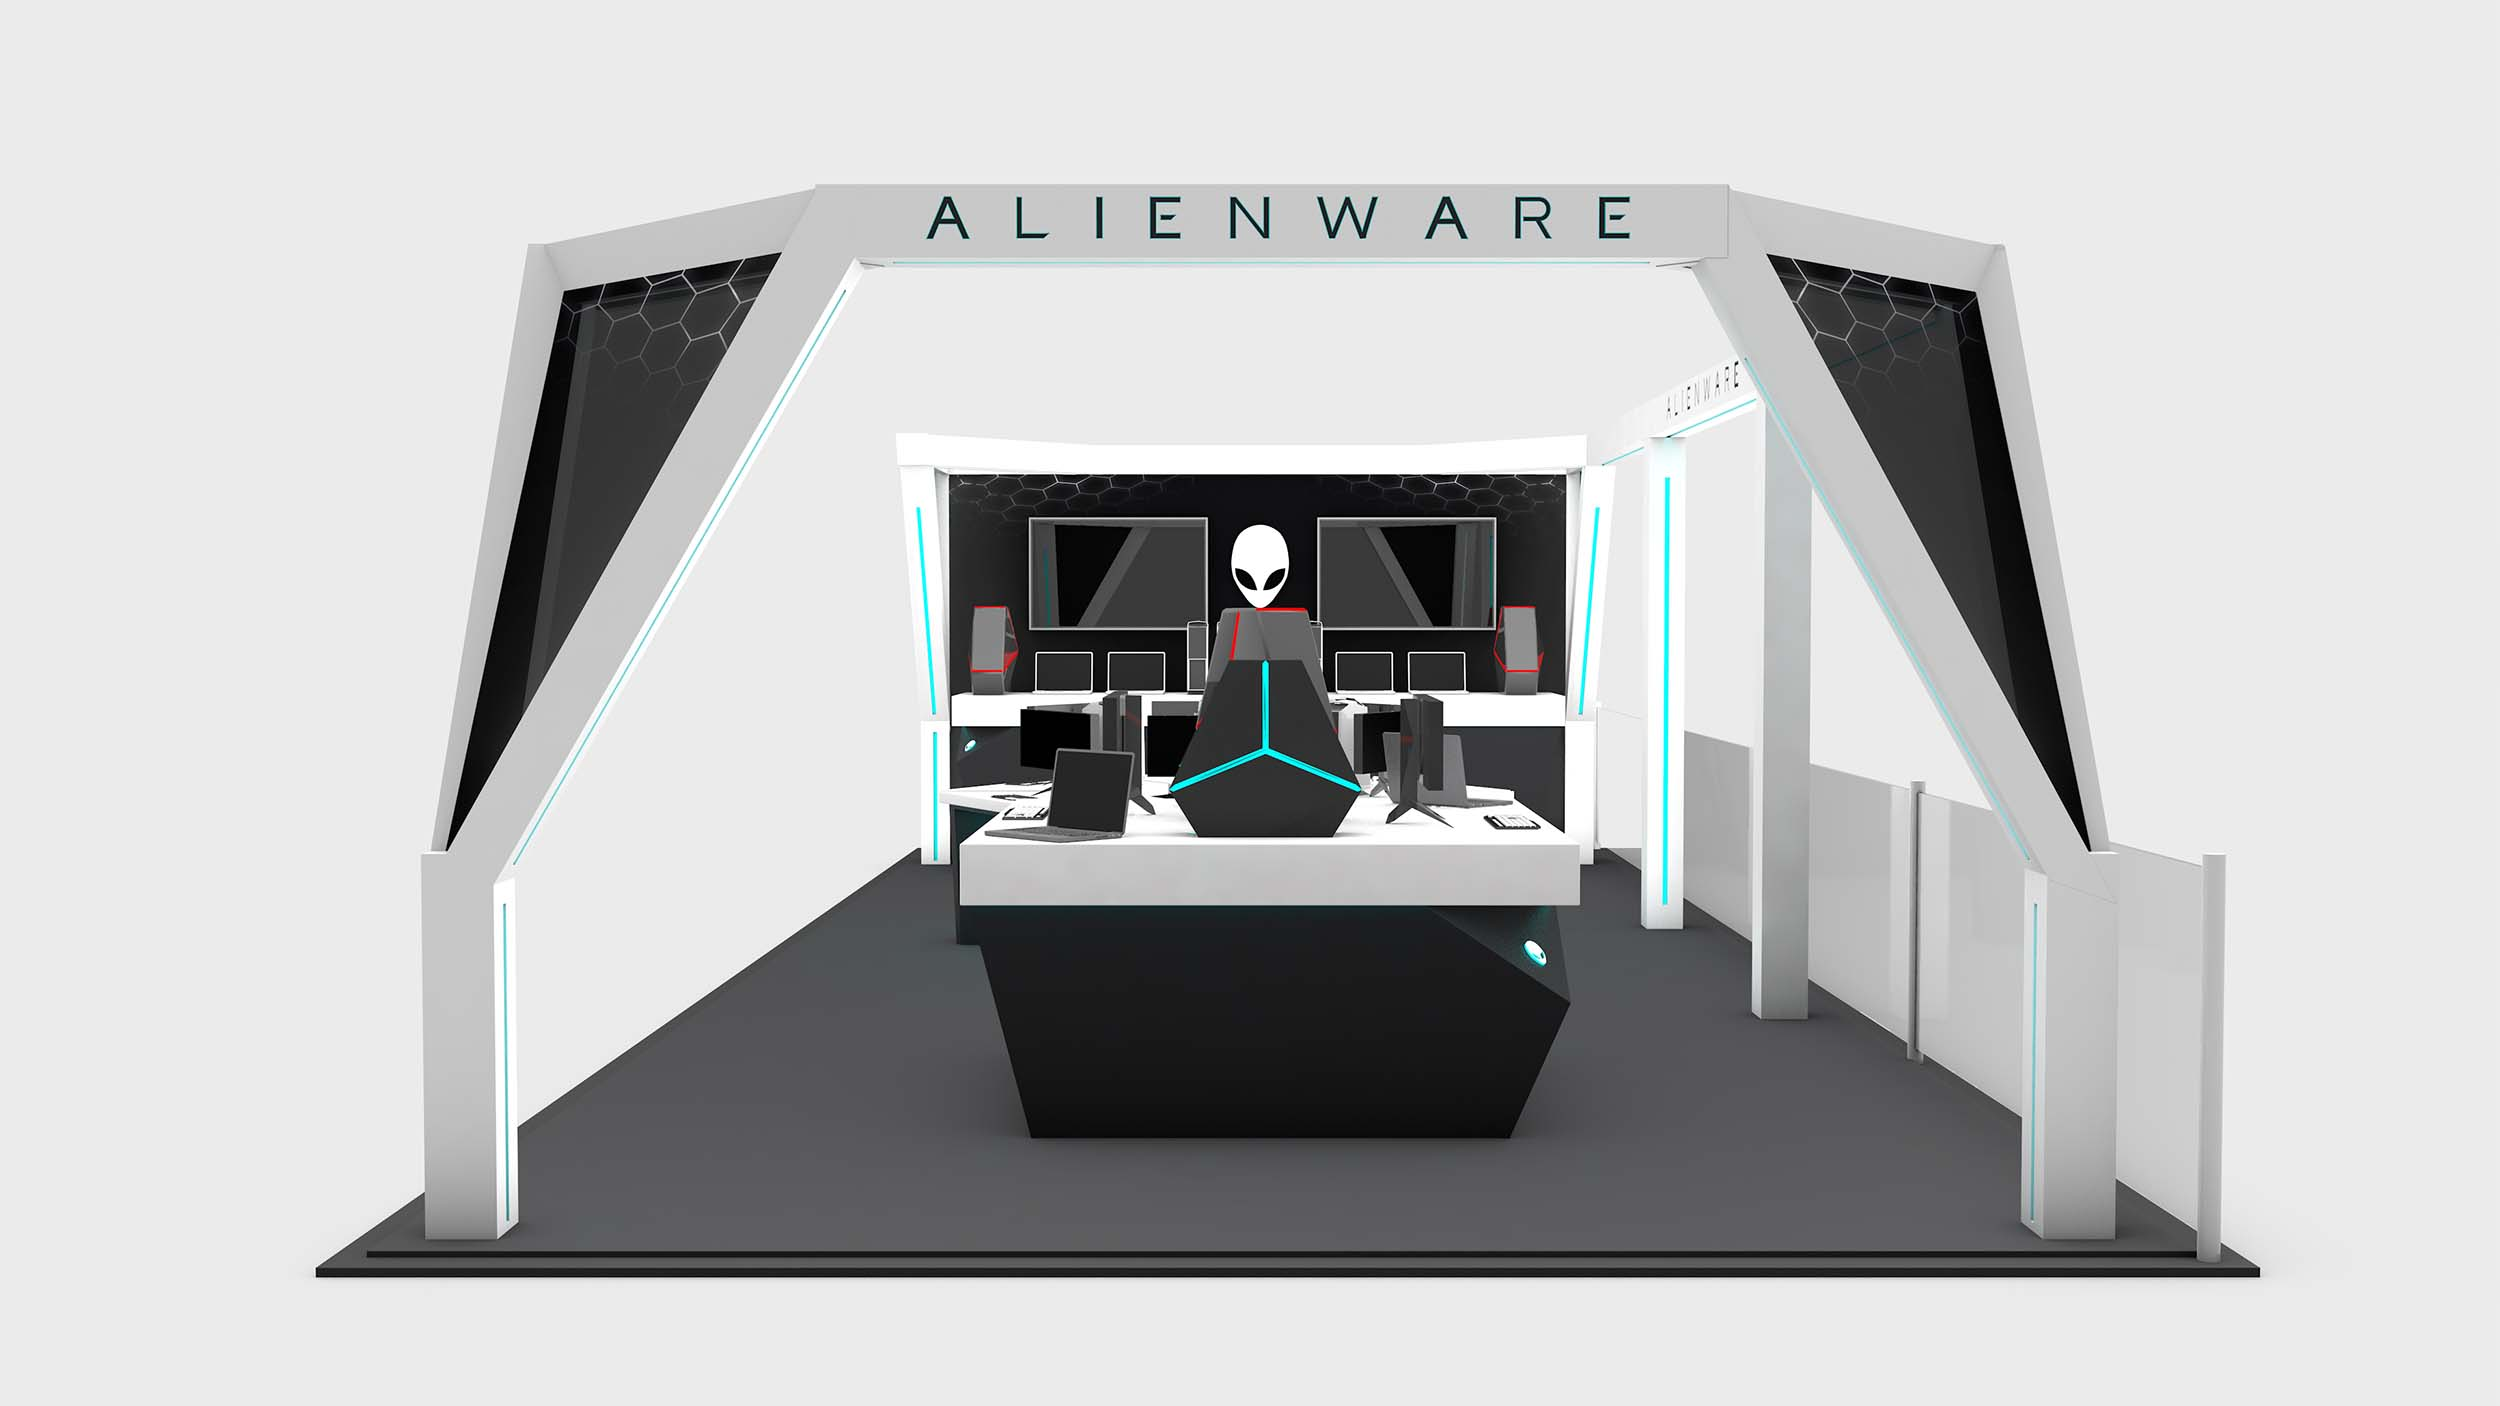 At A Glance - Designed and built an expo stand for AlienwareDeployed in Oslo, NorwayFirst ever store-in-store installation in Europe